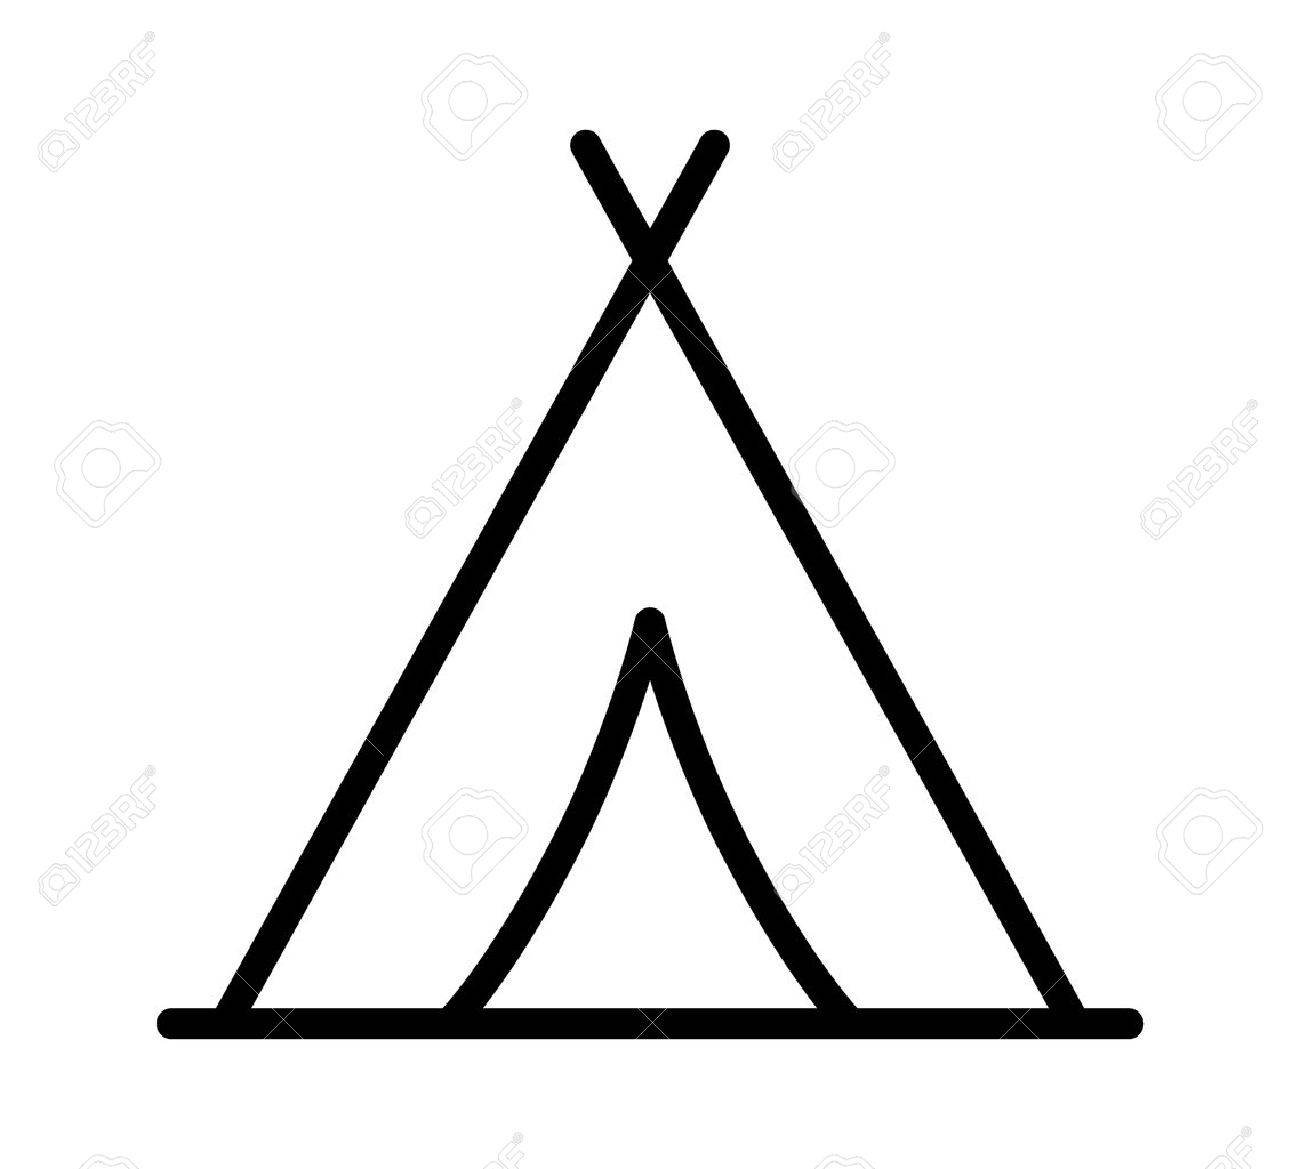 Camping Tent At Outdoor Camp Or Tipi / Teepee Line Art Icon For ...